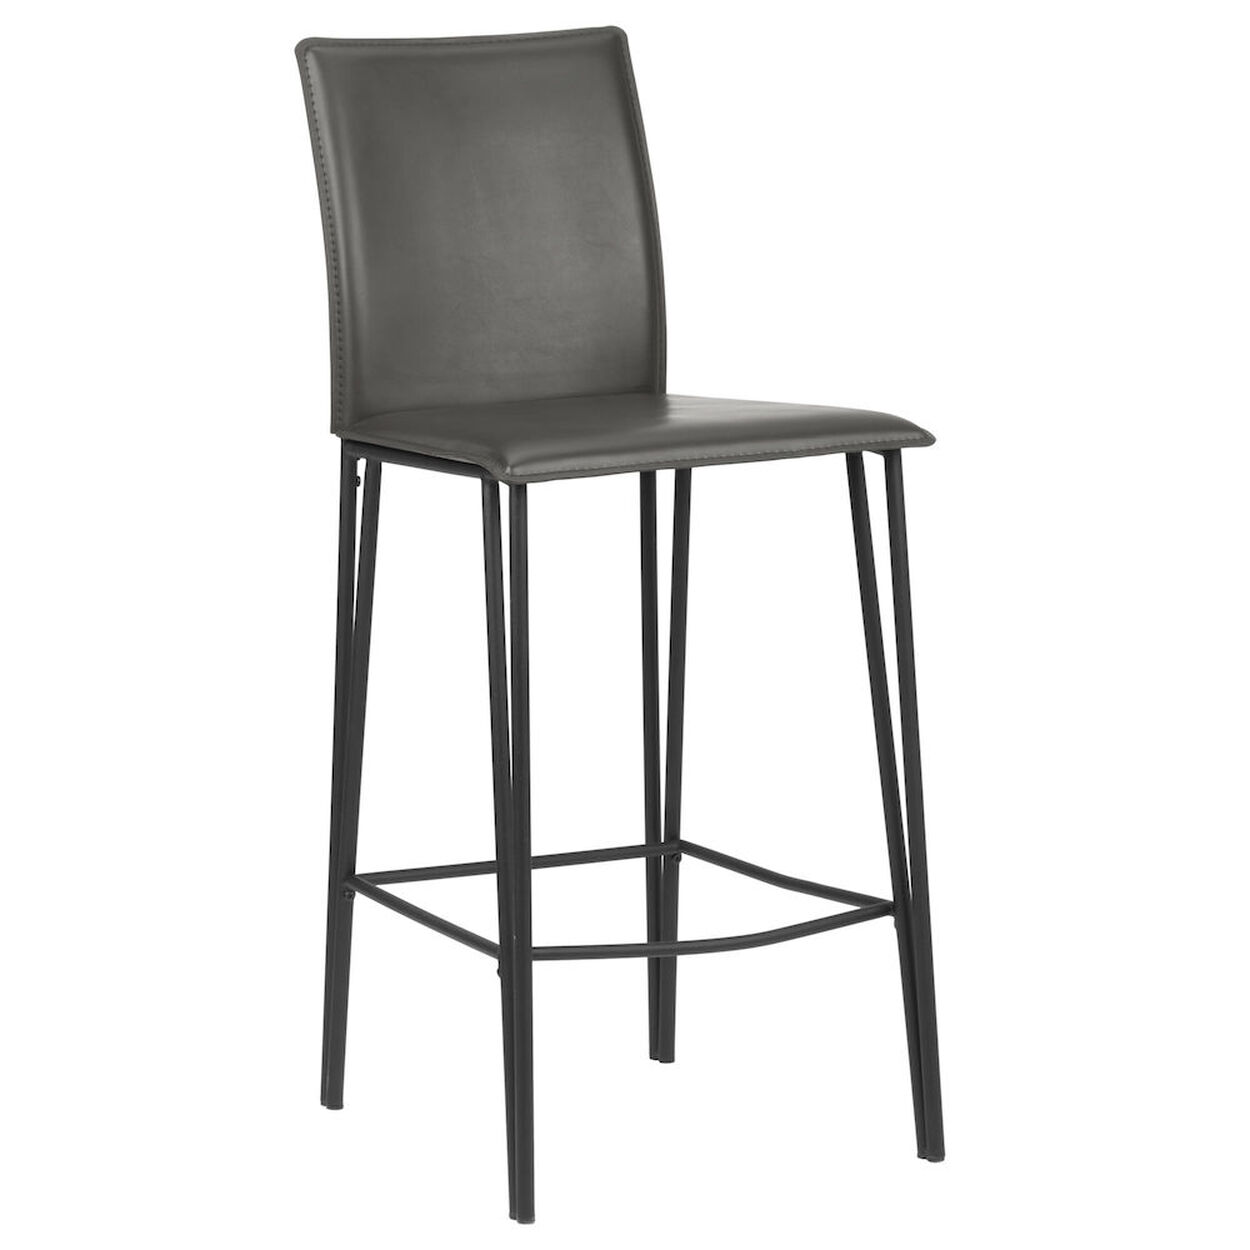 Faux Leather and Metal Counter Stool Bouclaircom : 9389640 from www.bouclair.com size 1250 x 1250 jpeg 51kB